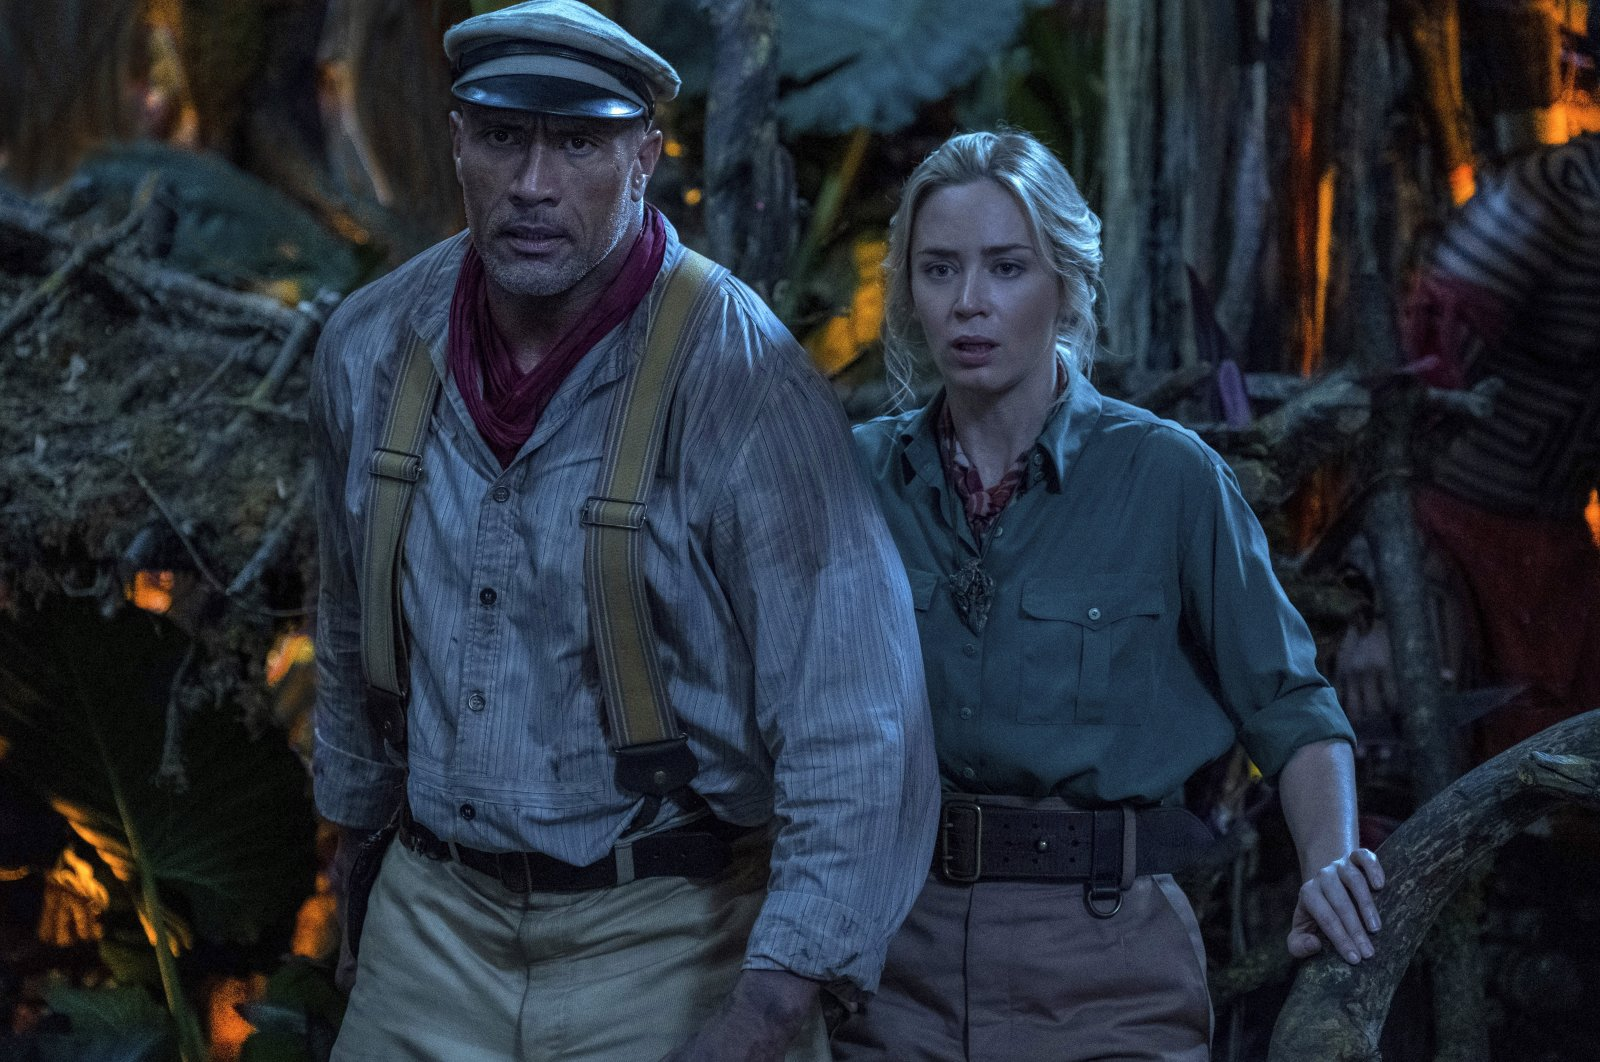 """Emily Blunt, right, and Dwayne Johnson in a scene from """"Jungle Cruise."""" (Disney via AP)"""